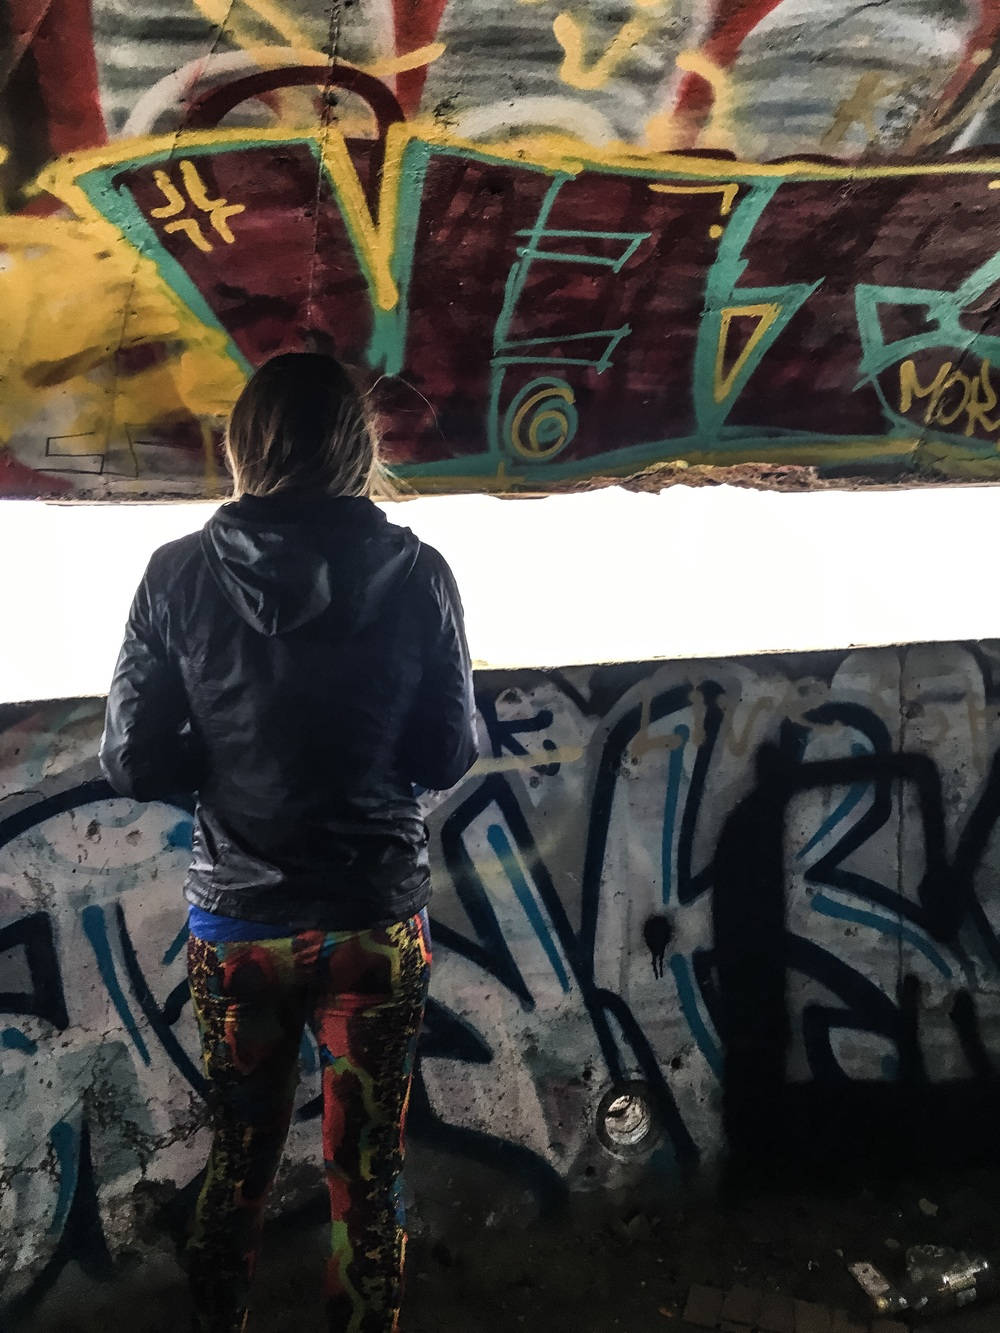 Inside the bunker. every square inch covered in graffiti. chippie's pants.